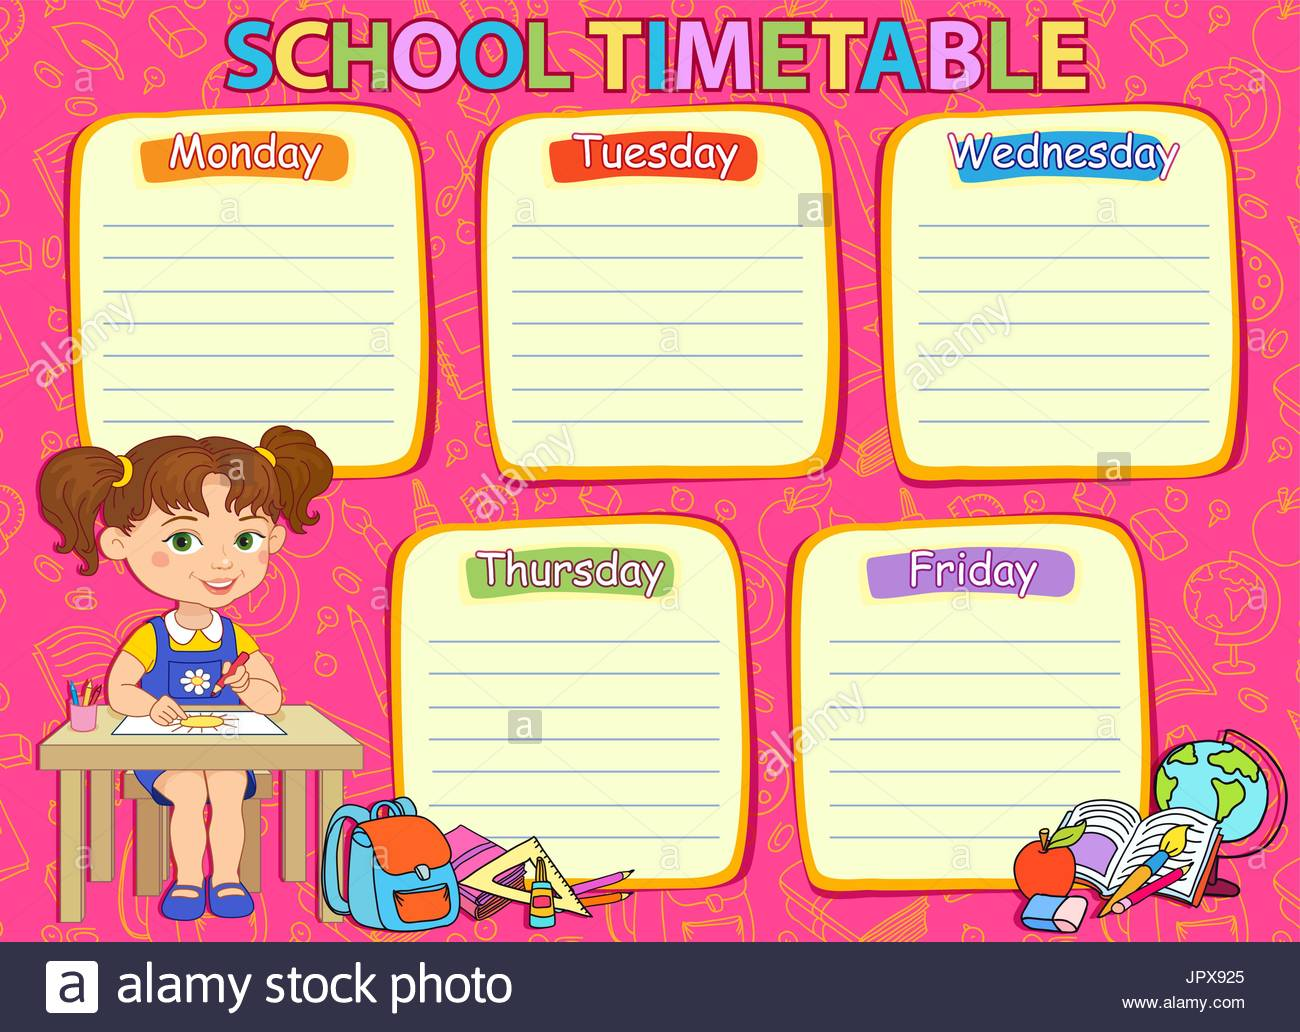 timetable templates for school in excel format